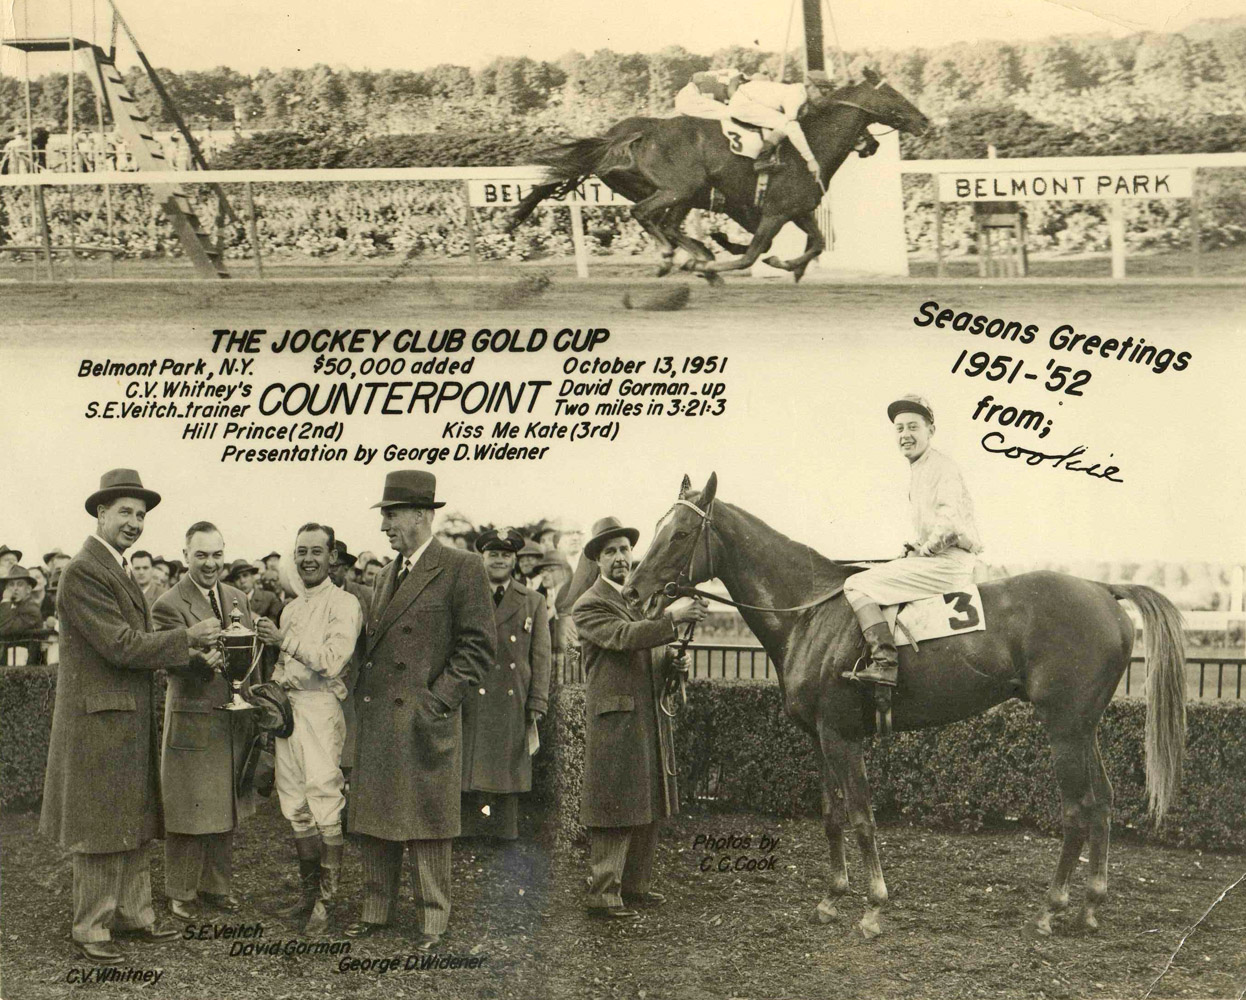 Win composite photograph for the 1951 Jockey Club Gold Cup won by C. V. Whitney's Counterpoint (C. C. Cook/Museum Collection)